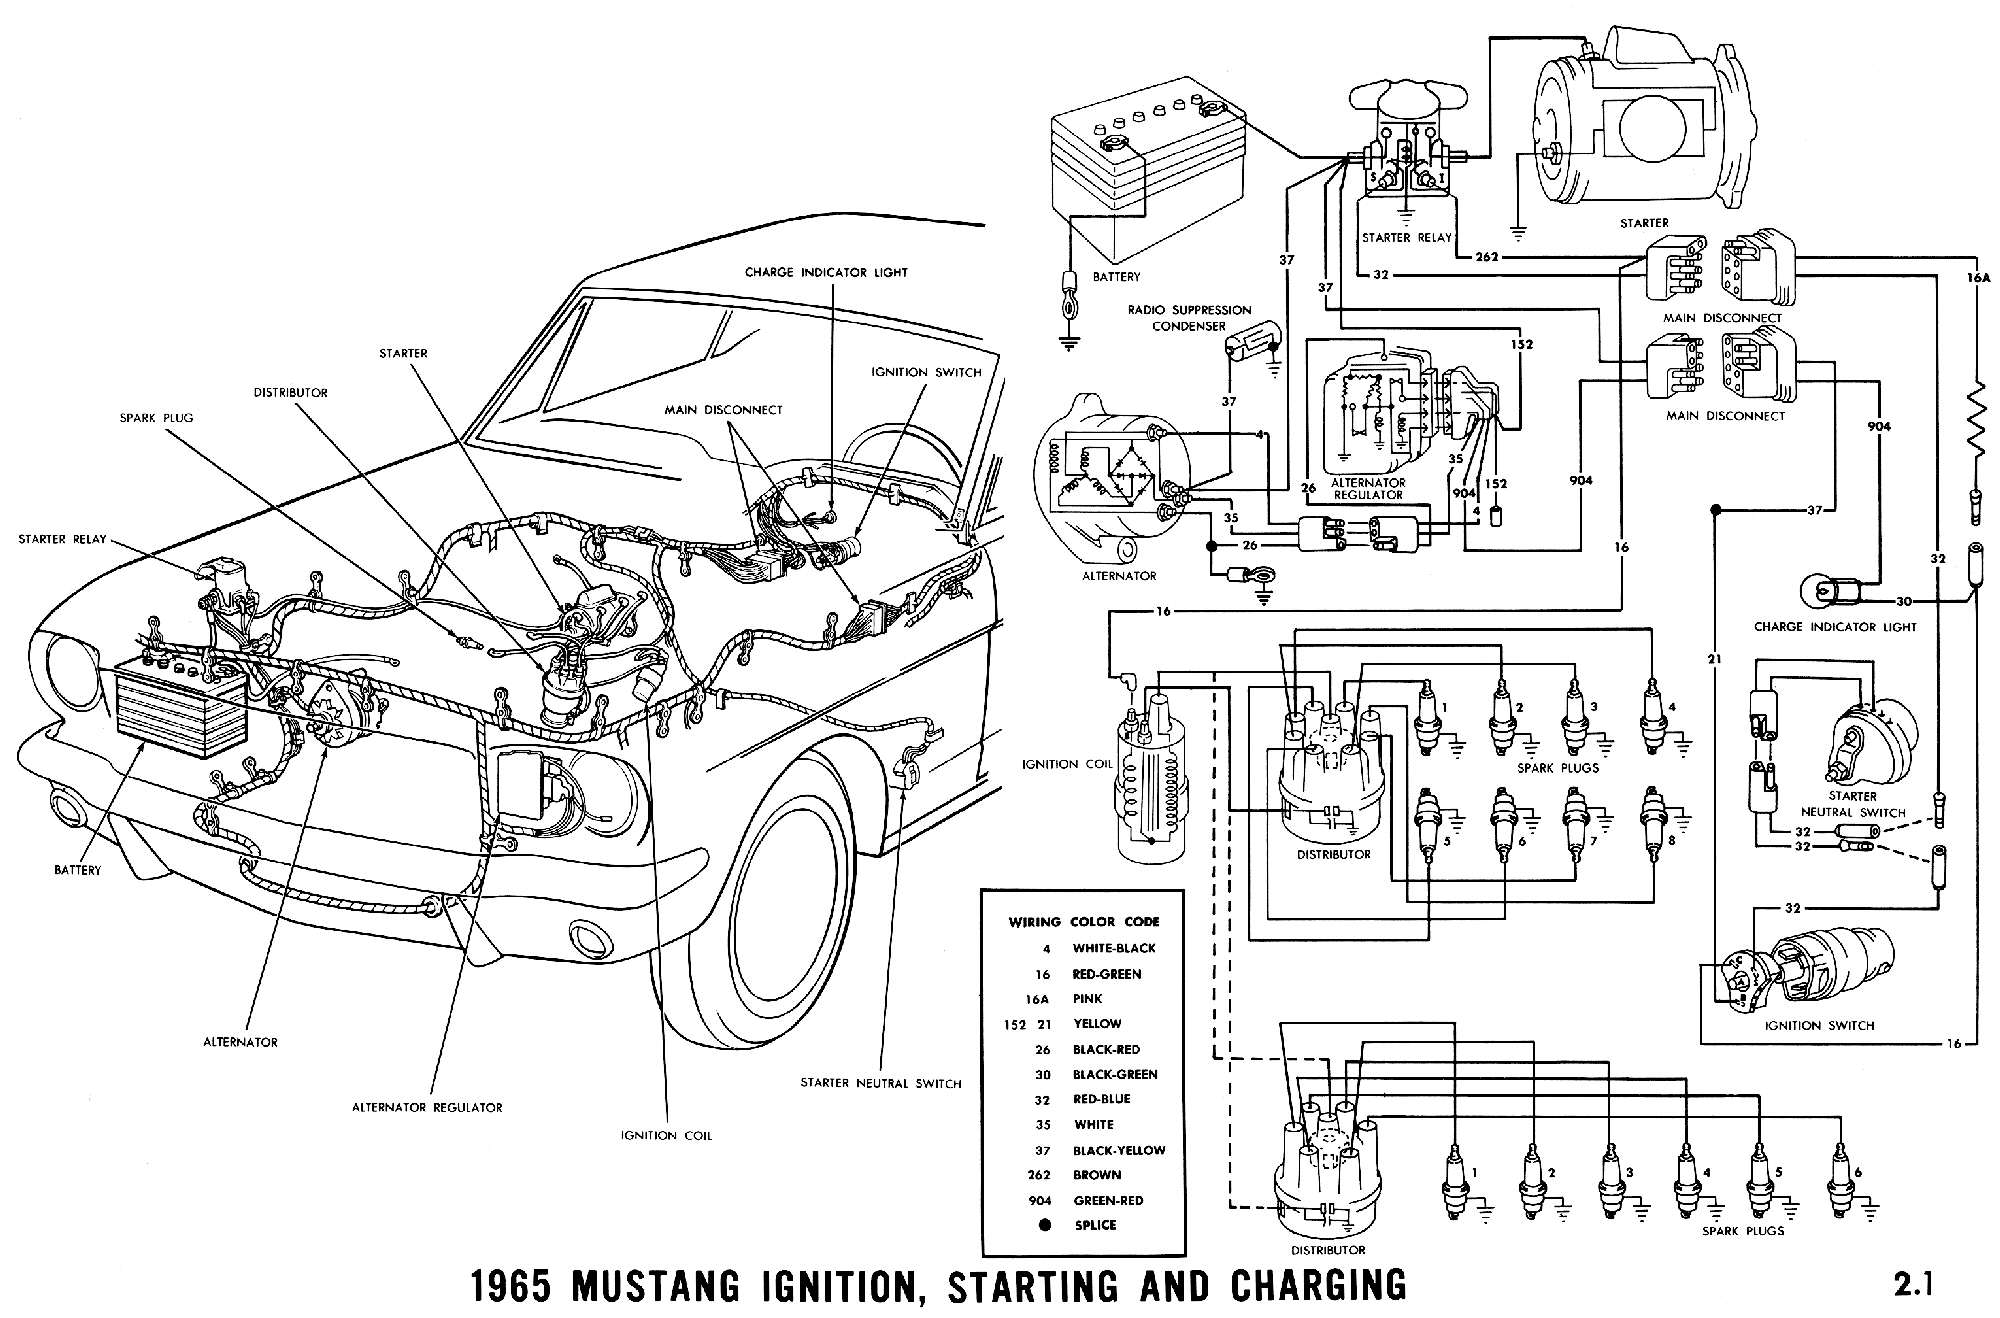 67 Cougar Engine Diagram - Wiring Diagram Work on